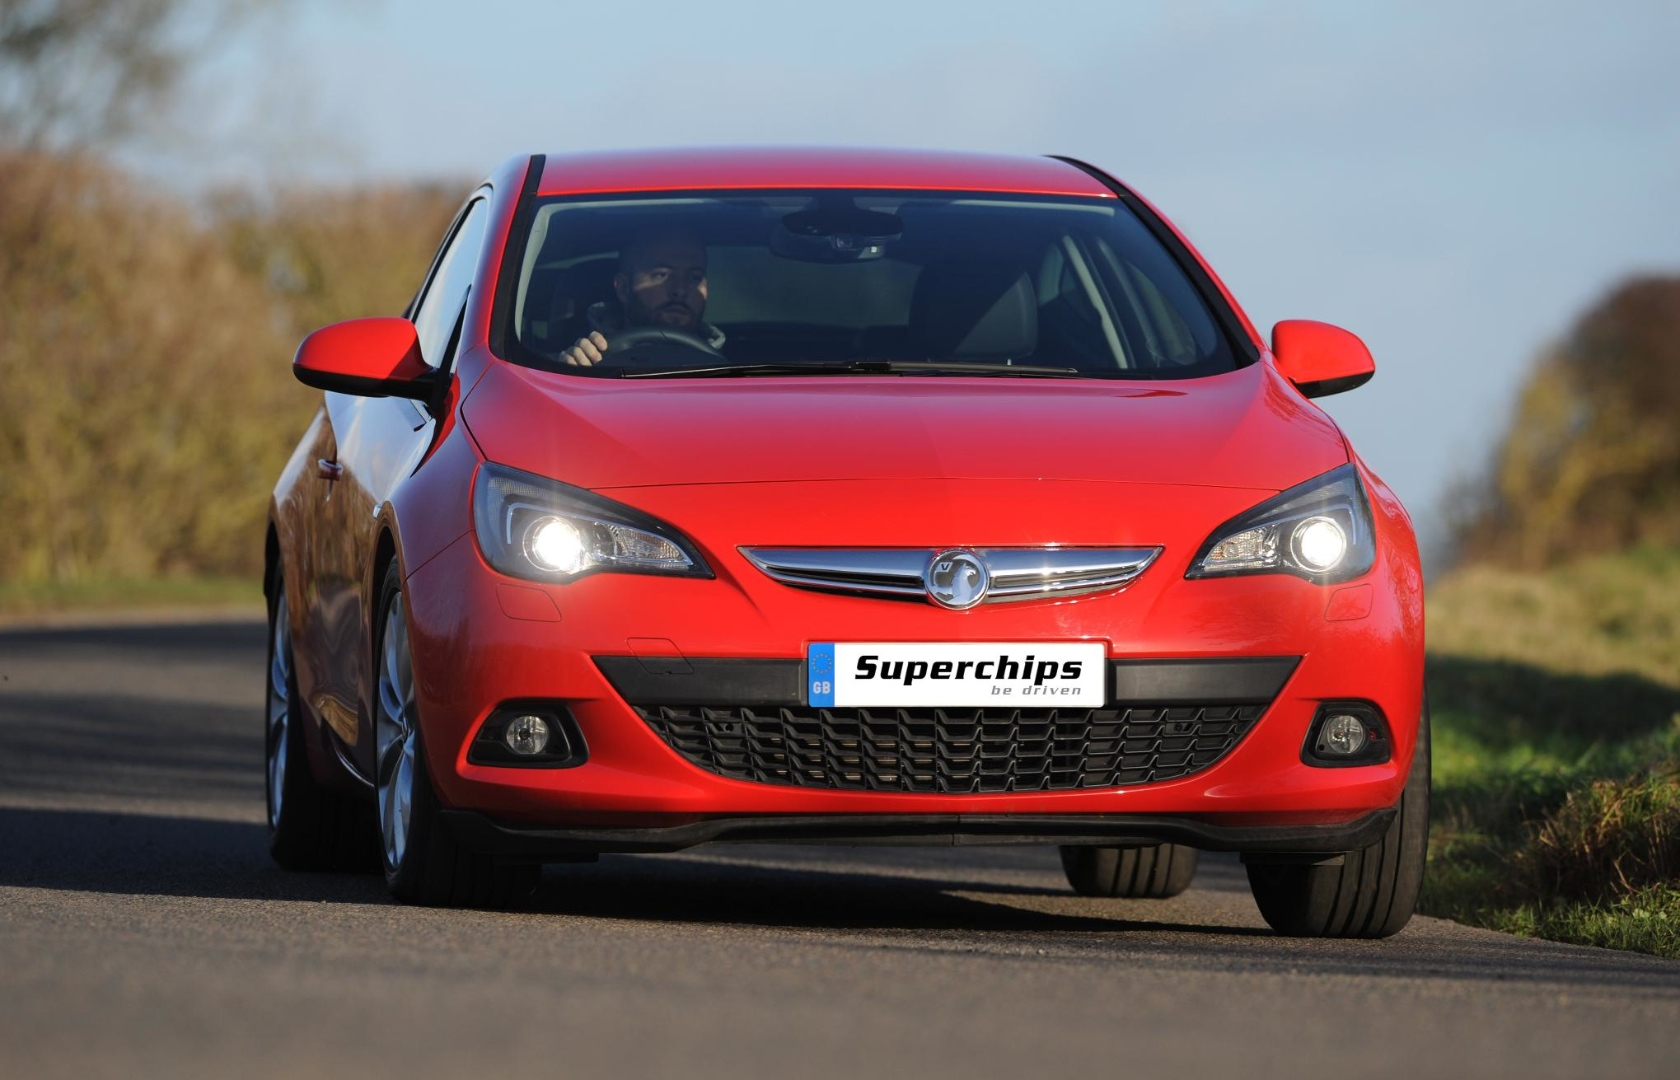 vauxhall opel astra corsa and meriva get superchips ecu remap autoevolution. Black Bedroom Furniture Sets. Home Design Ideas